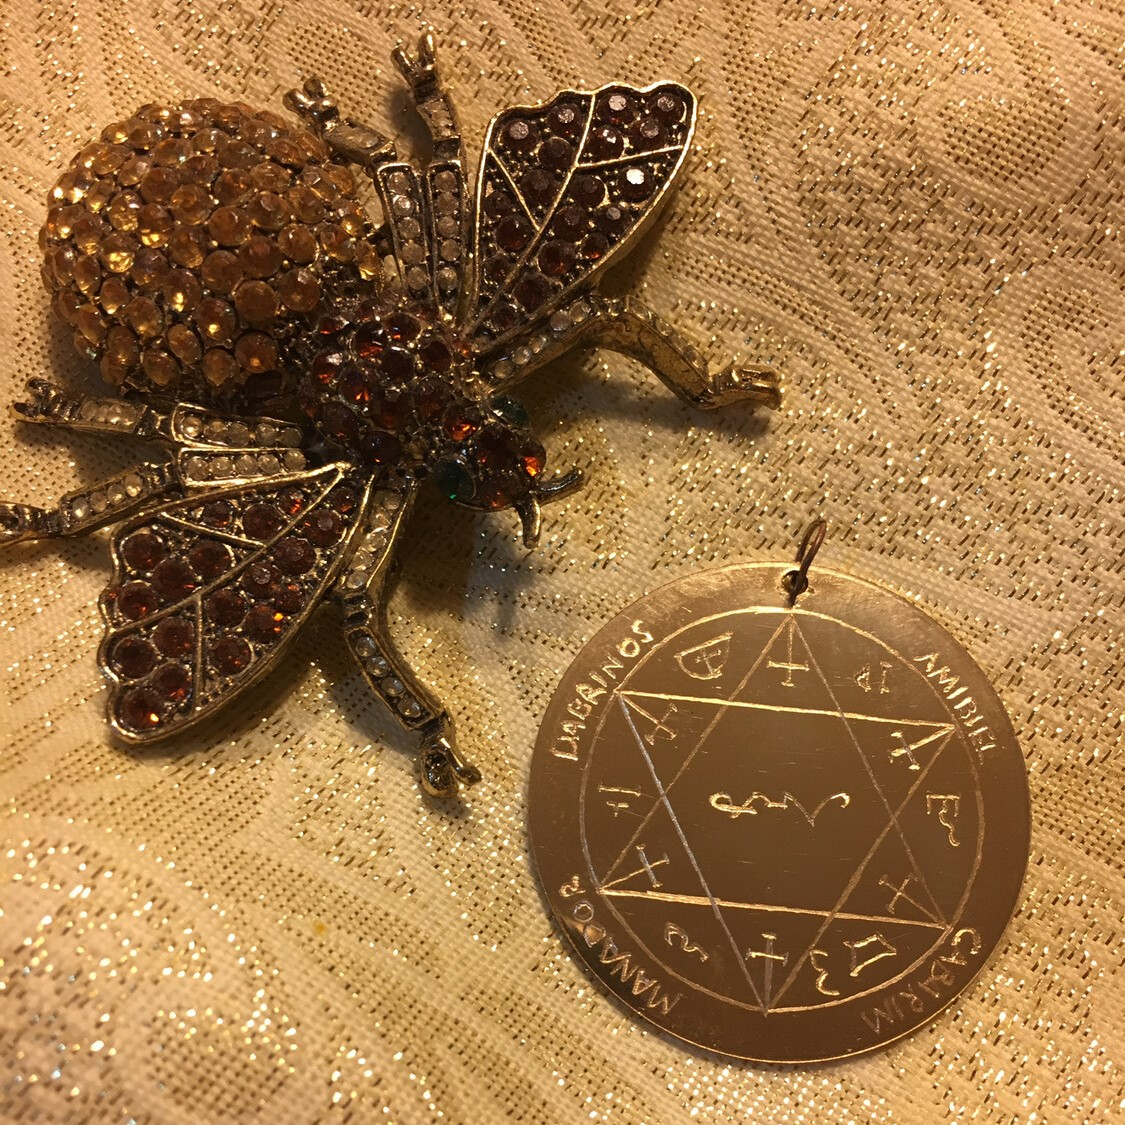 Solar health pentacle against a gold background